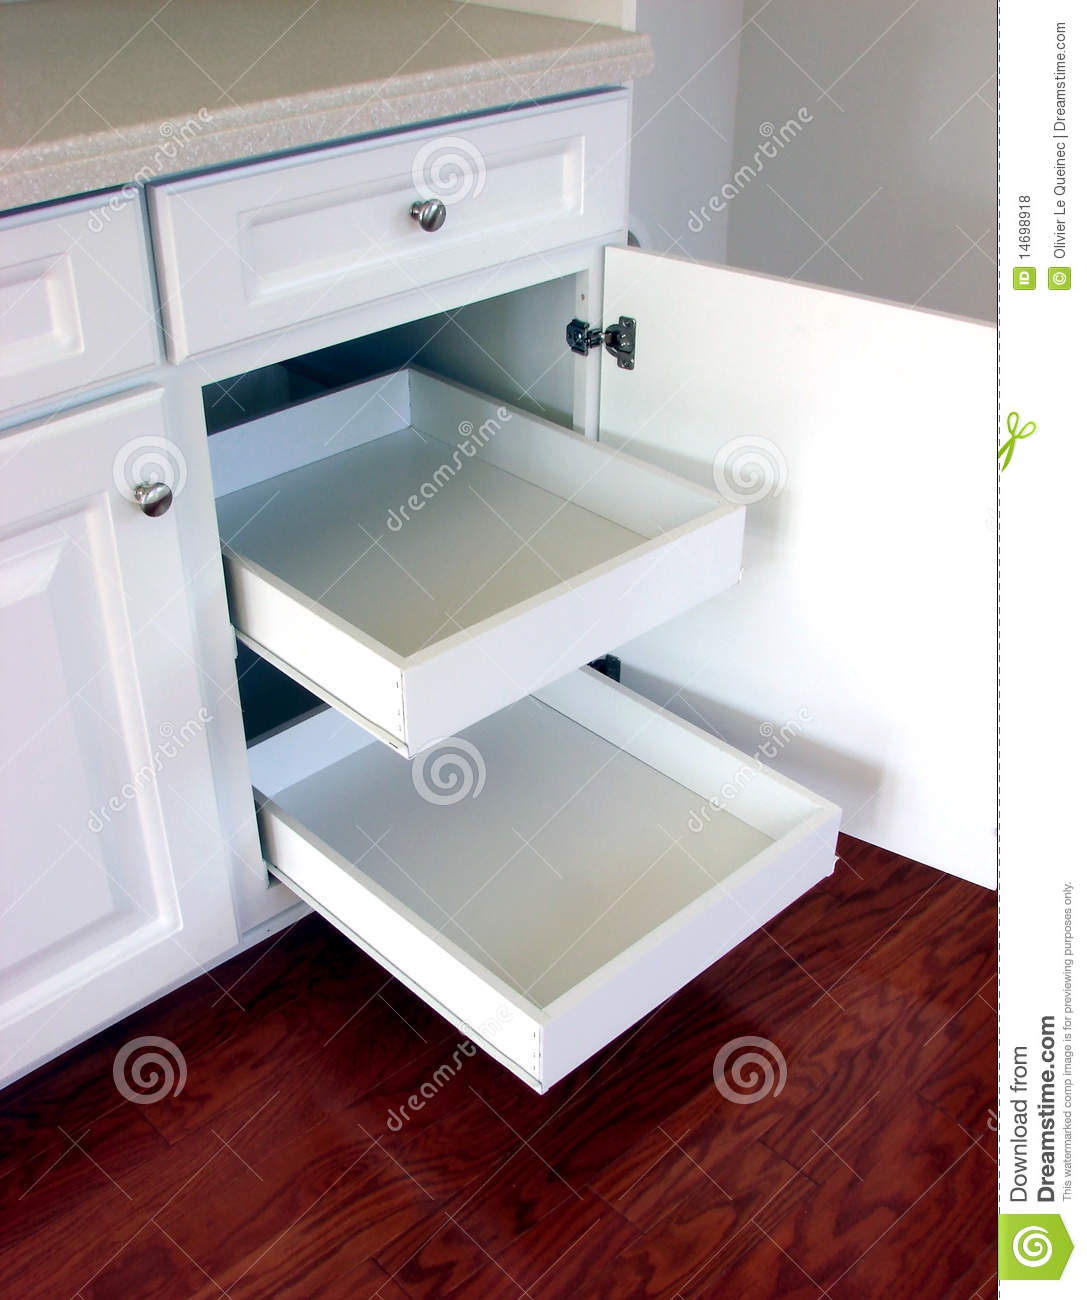 Pull Out Kitchen Drawers Shelves In A Modern House Stock